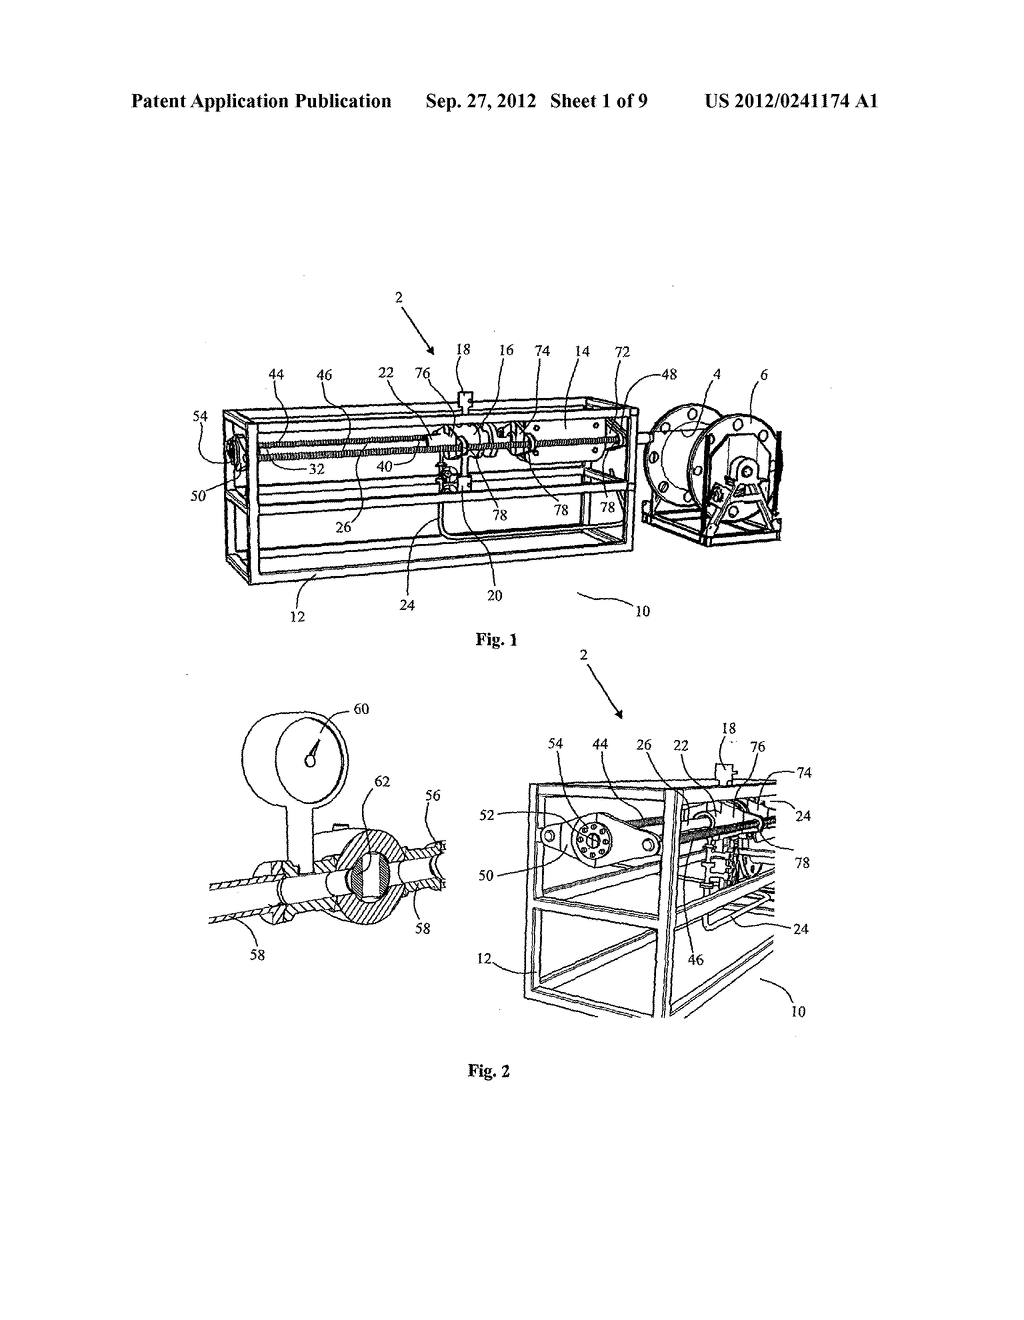 INJECTION MODULE, METHOD FOR USE FOR LATERAL INSERTION AND BENDING OF A     COILED TUBING VIA A SIDE OPENING IN A WELL - diagram, schematic, and image 02